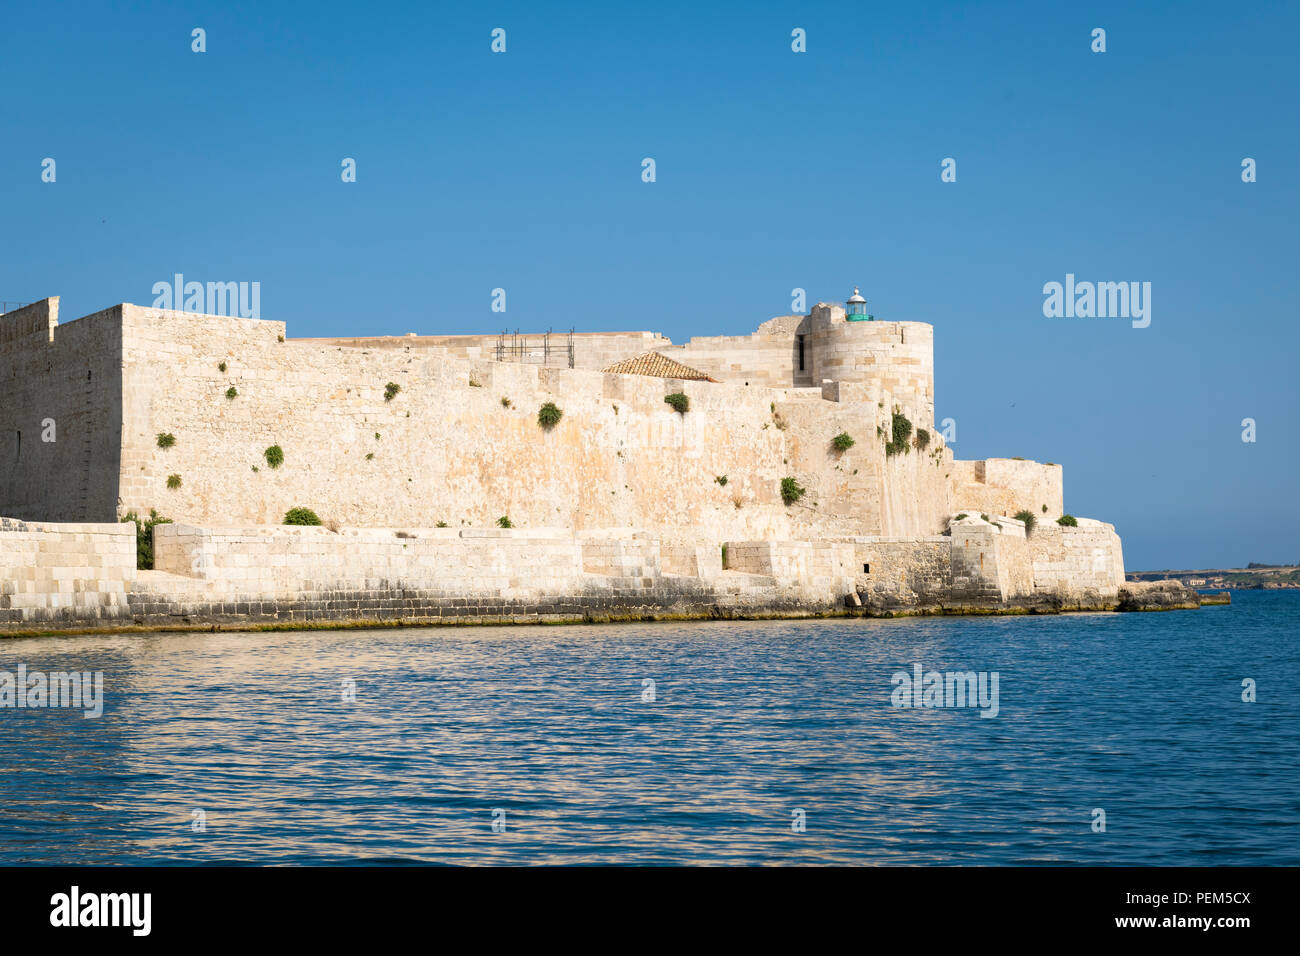 Italy Sicily Syracuse Siracusa Ortygia island stronghold fort fortress bastion castle Castello Maniace built 1200s by Frederick II lighthouse sea - Stock Image